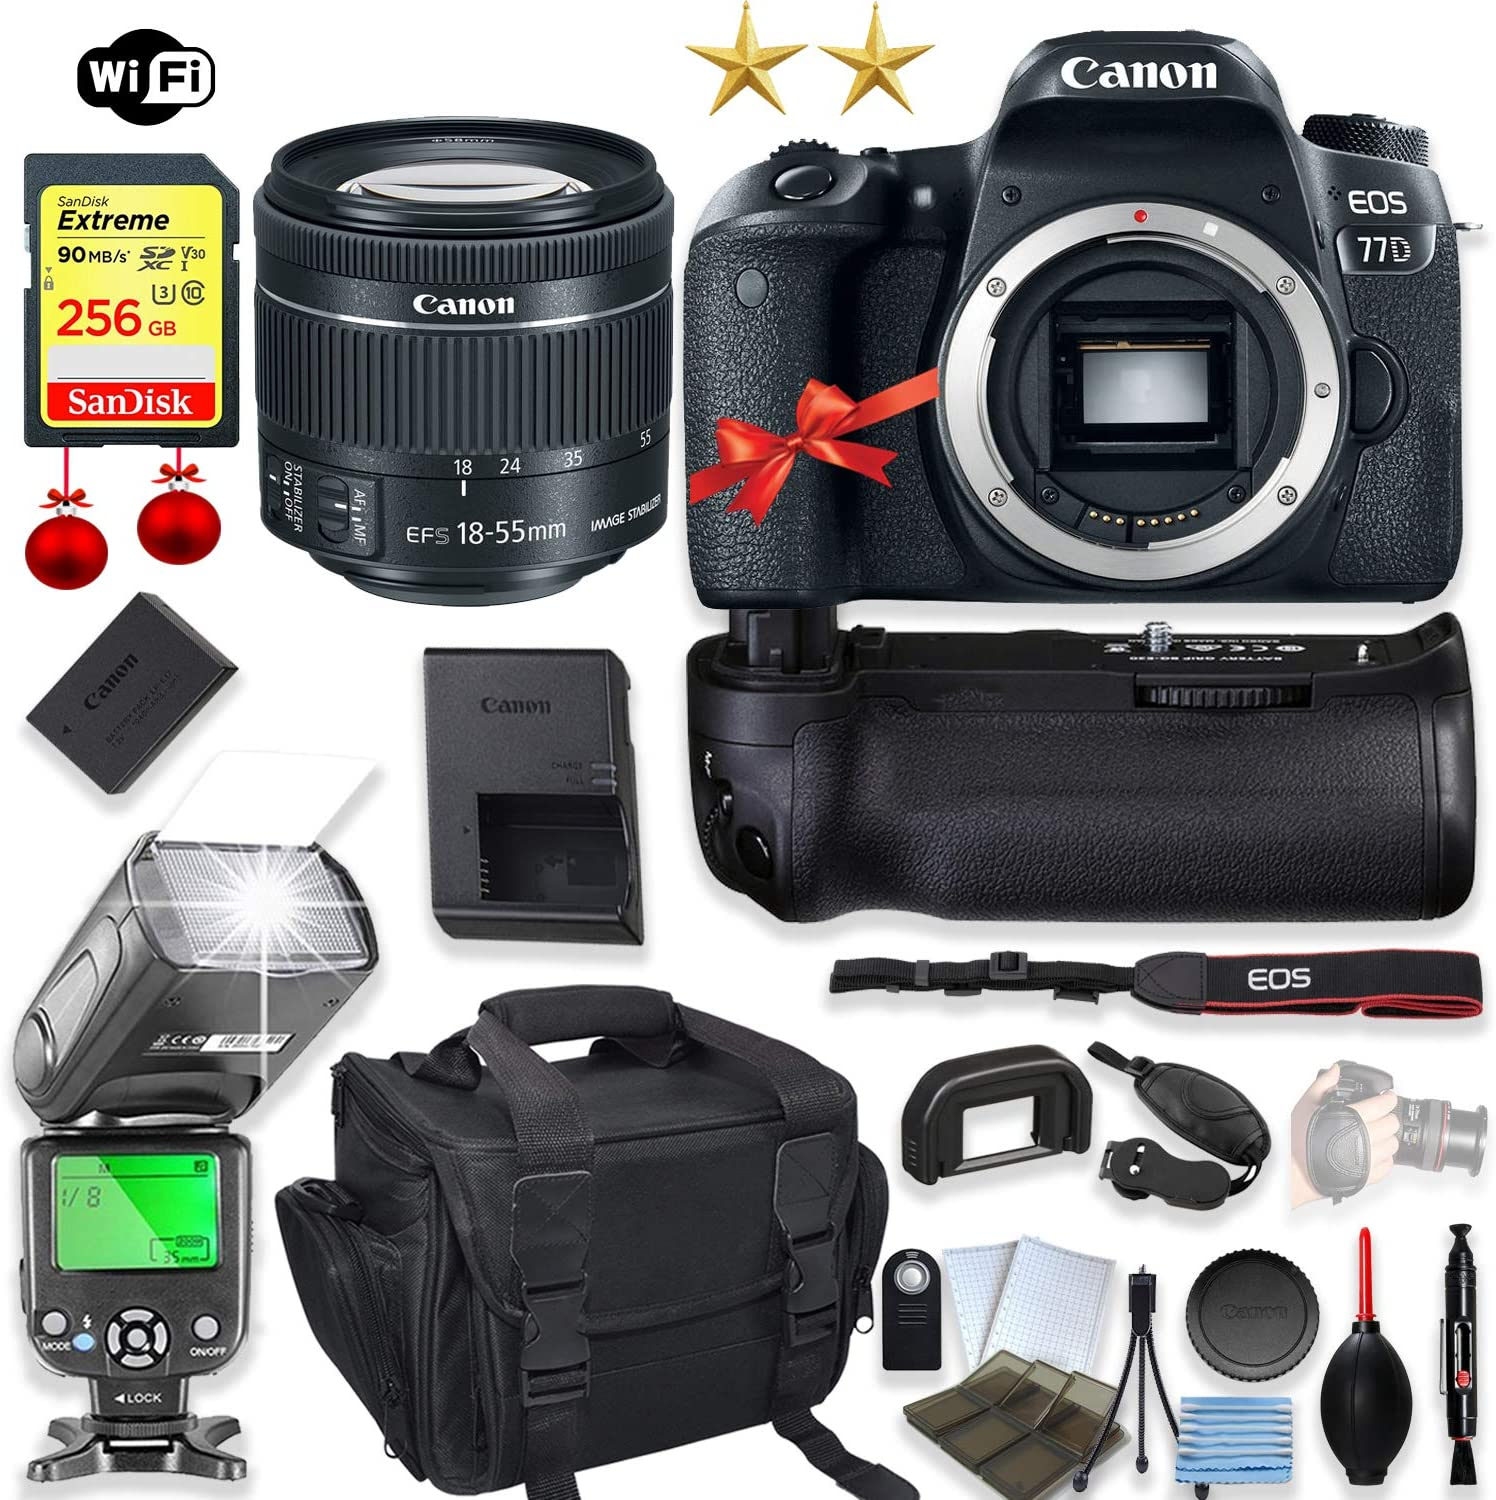 Canon EOS 77D DSLR Camera + Canon EF-S 18-55mm f/4-5.6 is STM Lens + 256GB Sandisk Memory + Power Battery Grip with Holiday Special Bundle (15 Items)